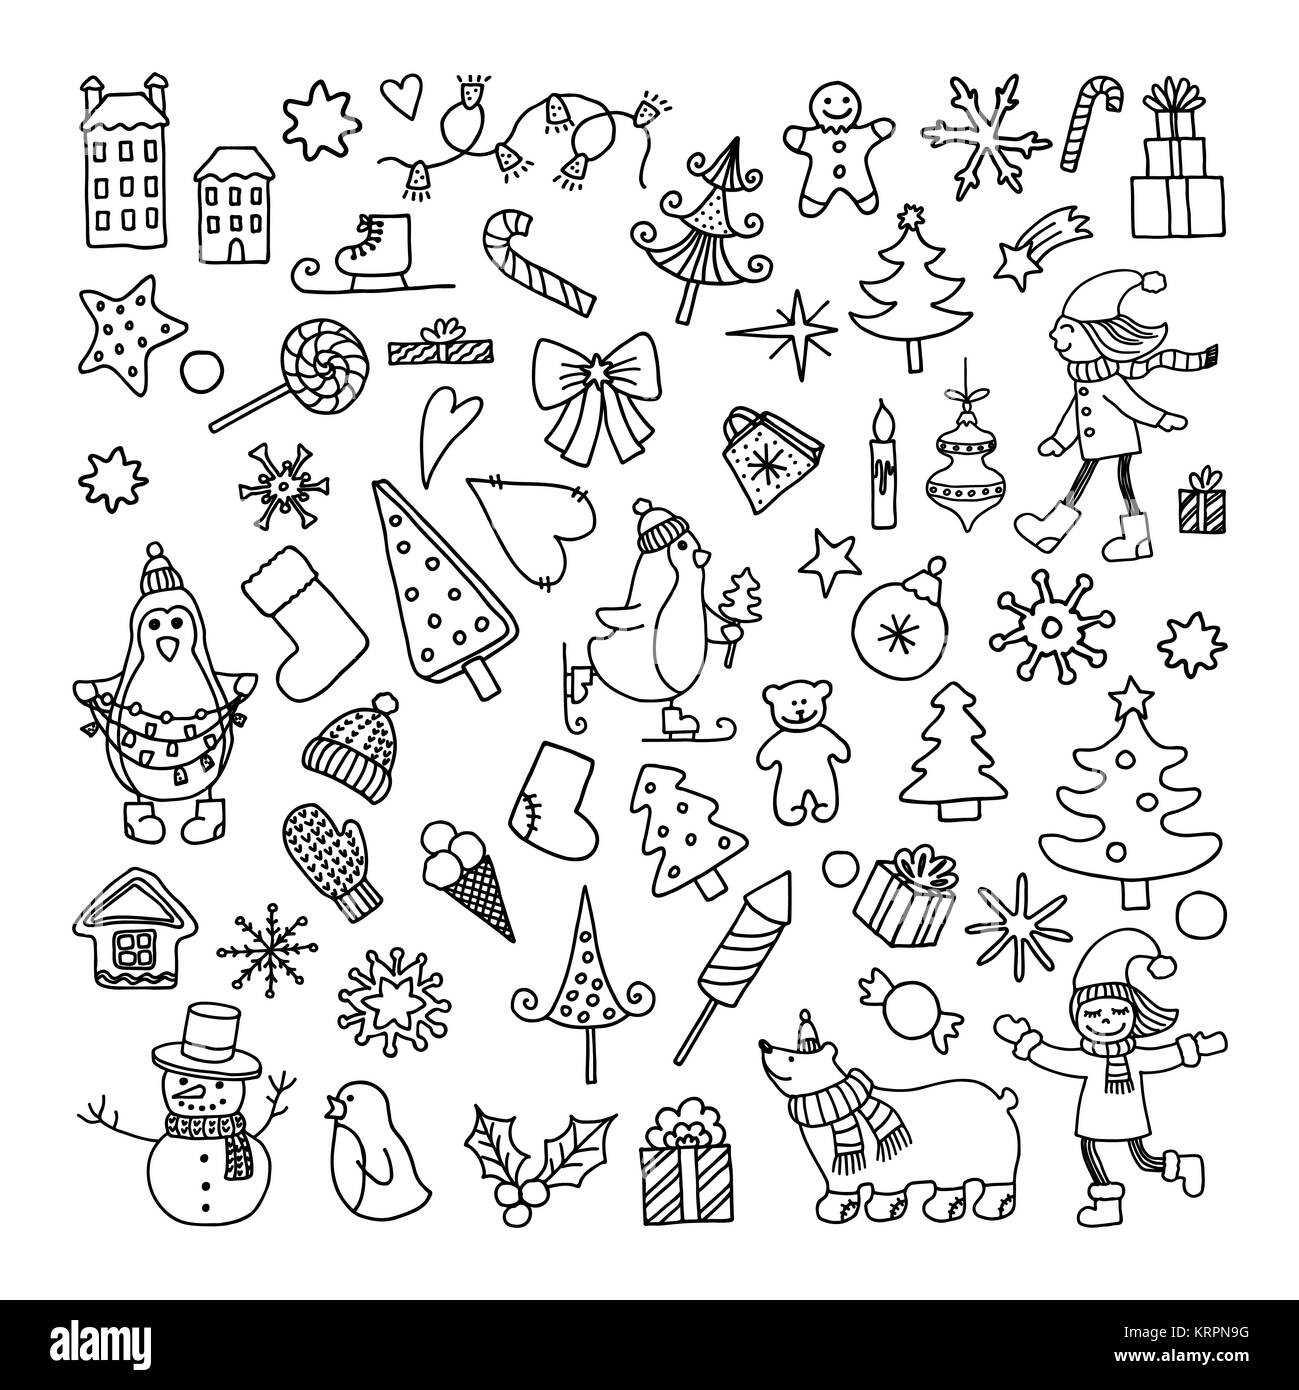 Doodle Christmas Object Cartoon Stock Photos & Doodle Christmas ...